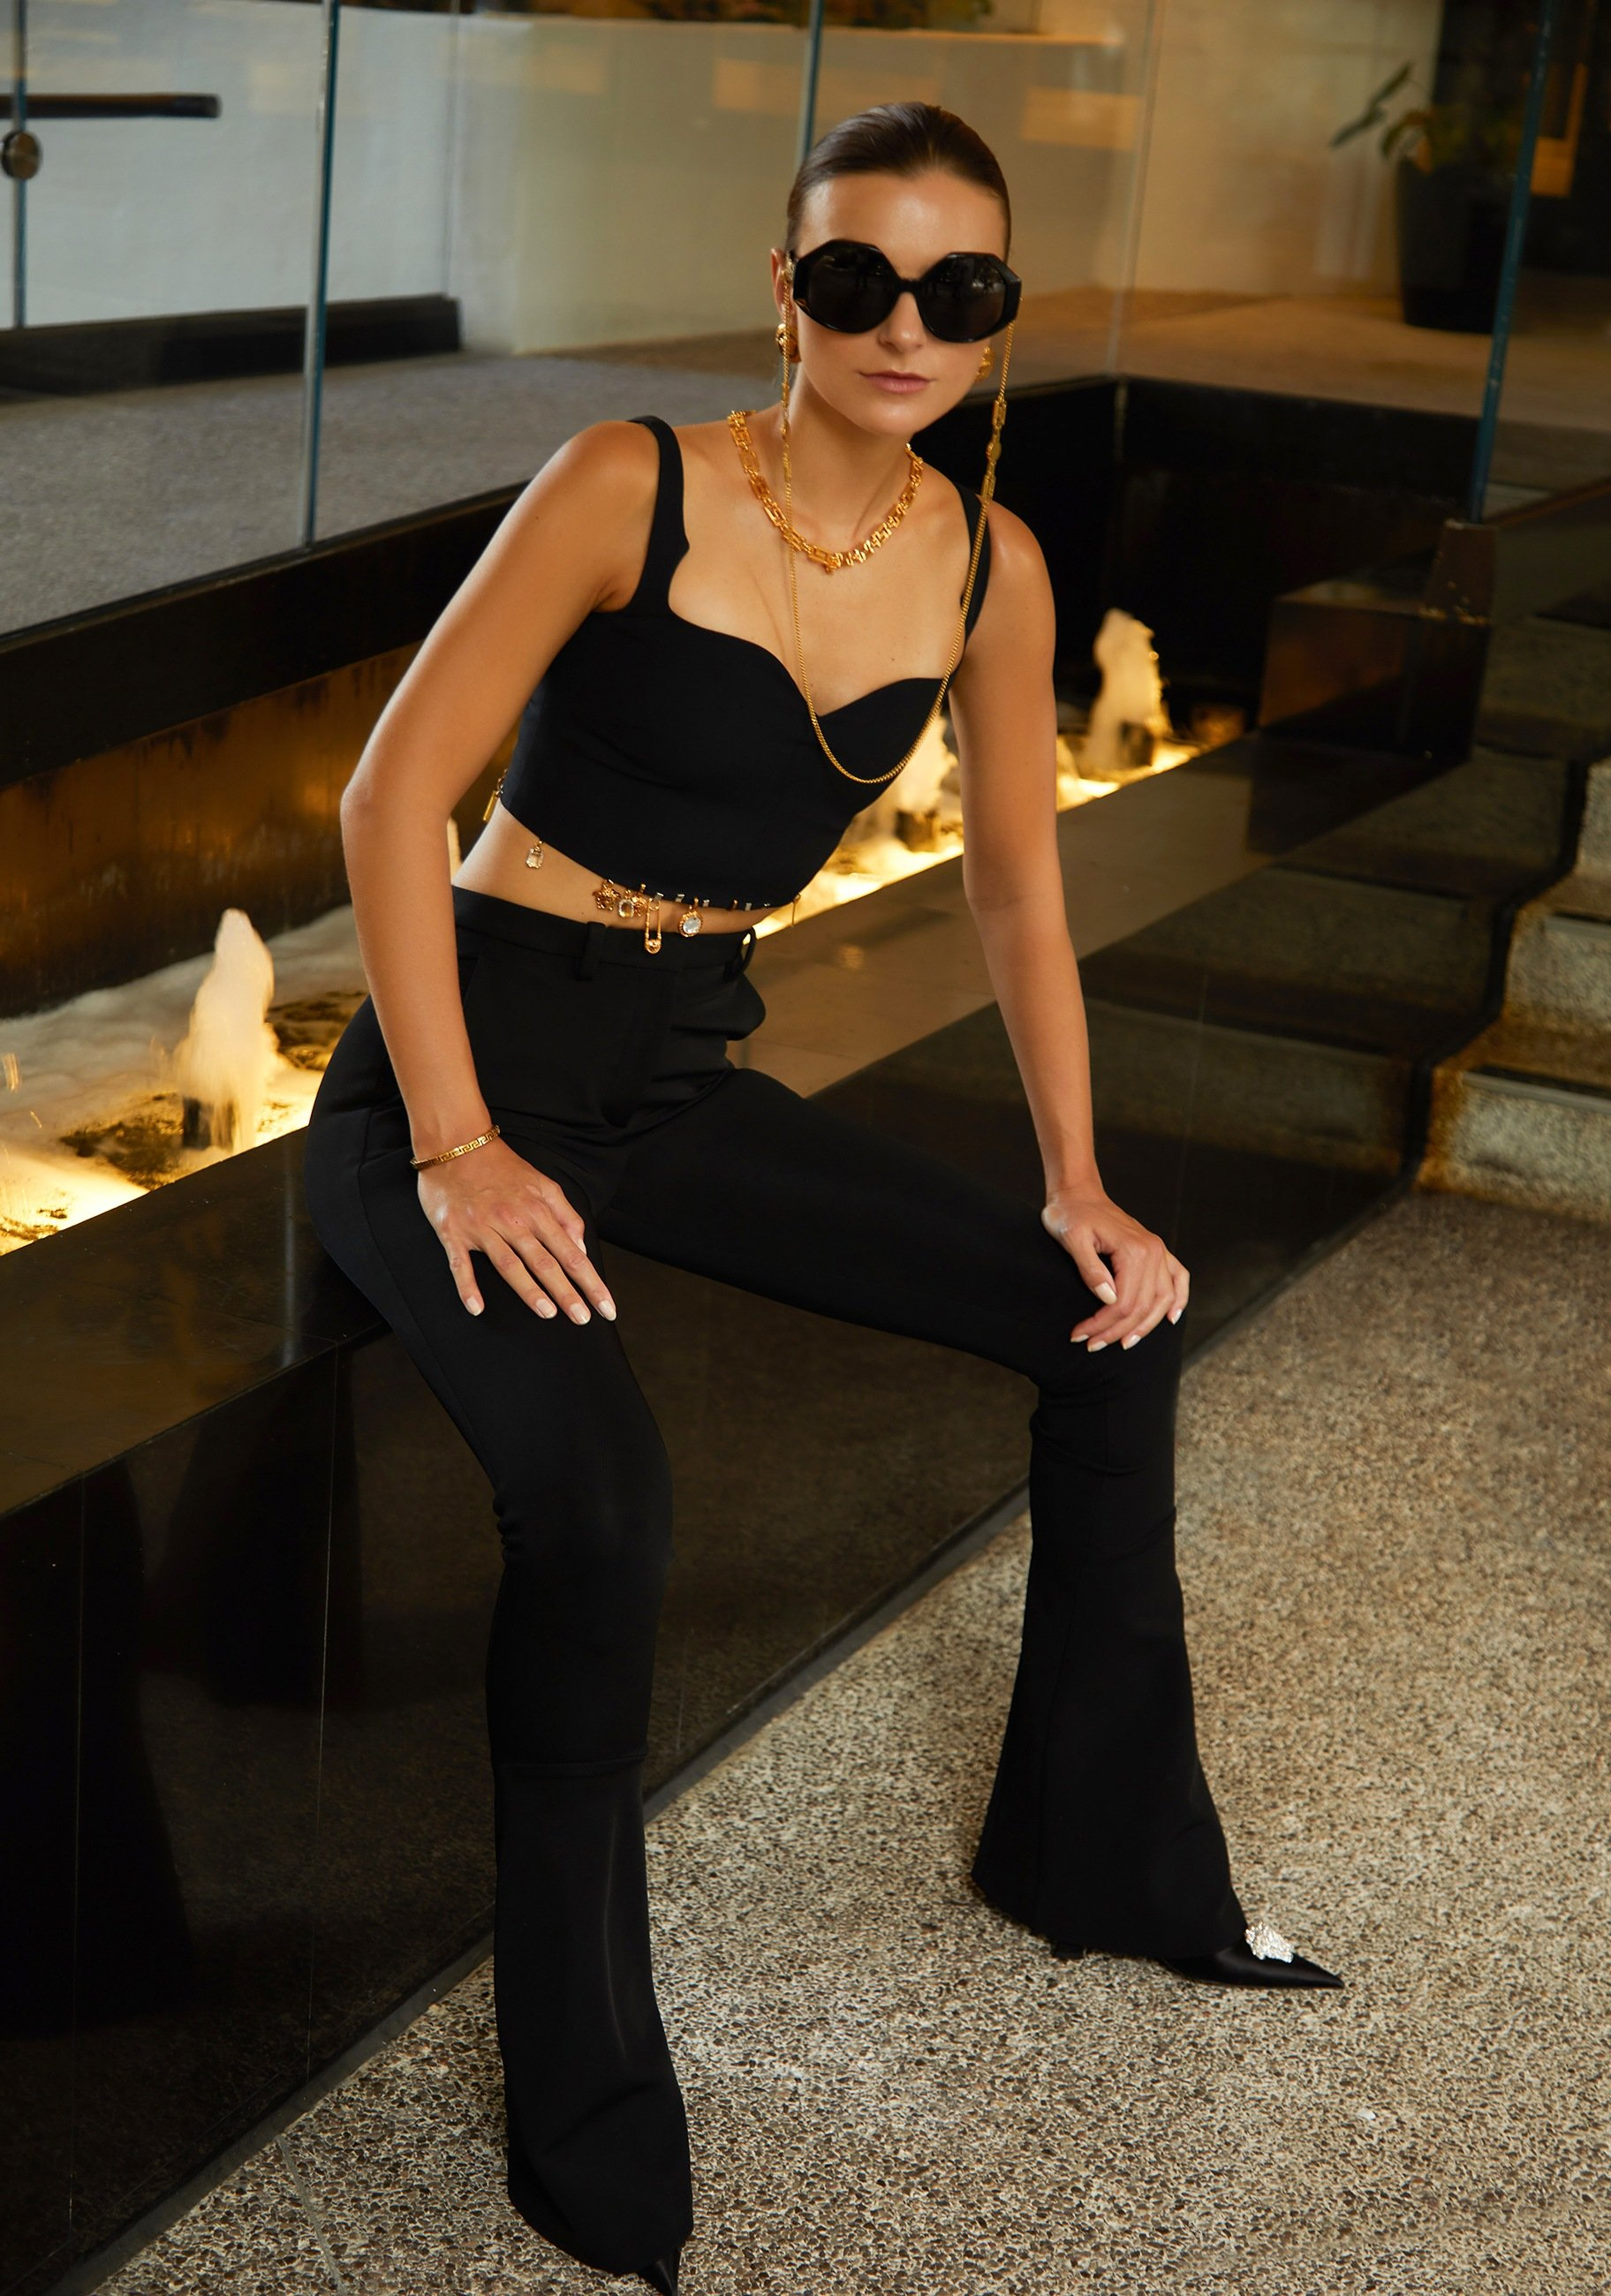 Versace black satin bustier top and pants with gold charm detailing, black pointed toe pumps with crystal La Medusa detail and black sunglasses with gold chain